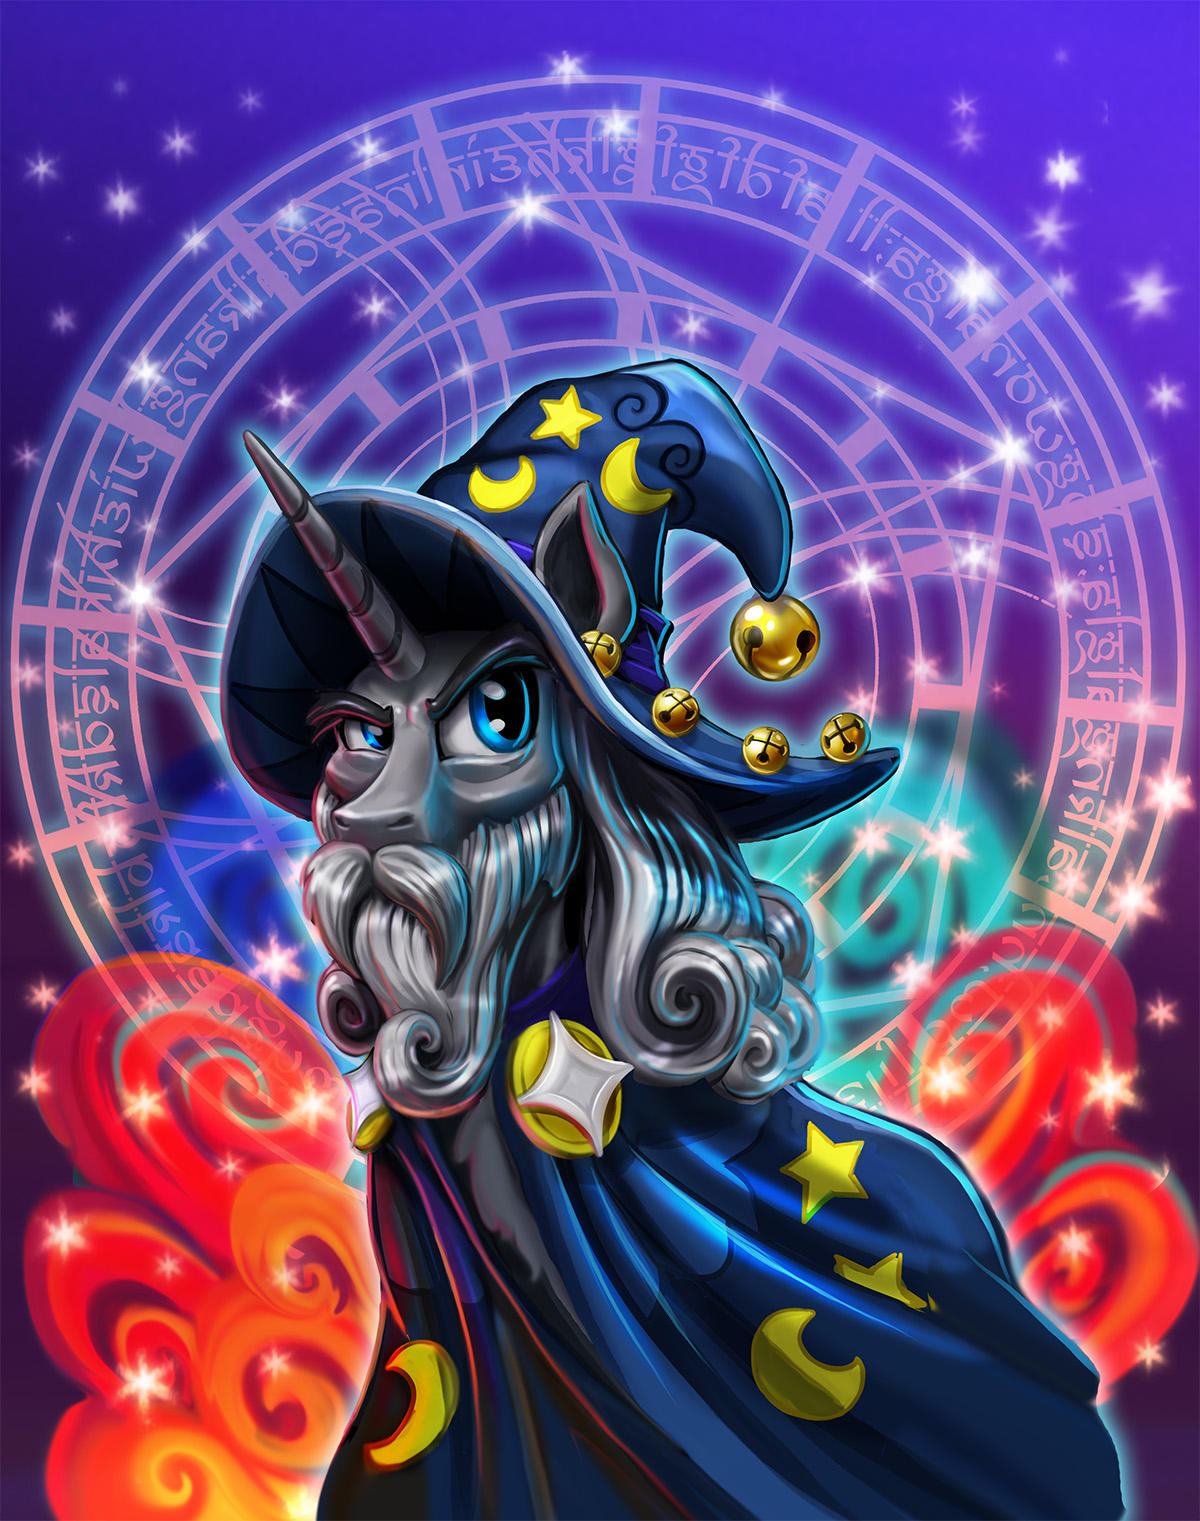 Magic Horse With Beard And Hat By Harwicks Art My Little Pony Friendship Is Magic Know Your Meme